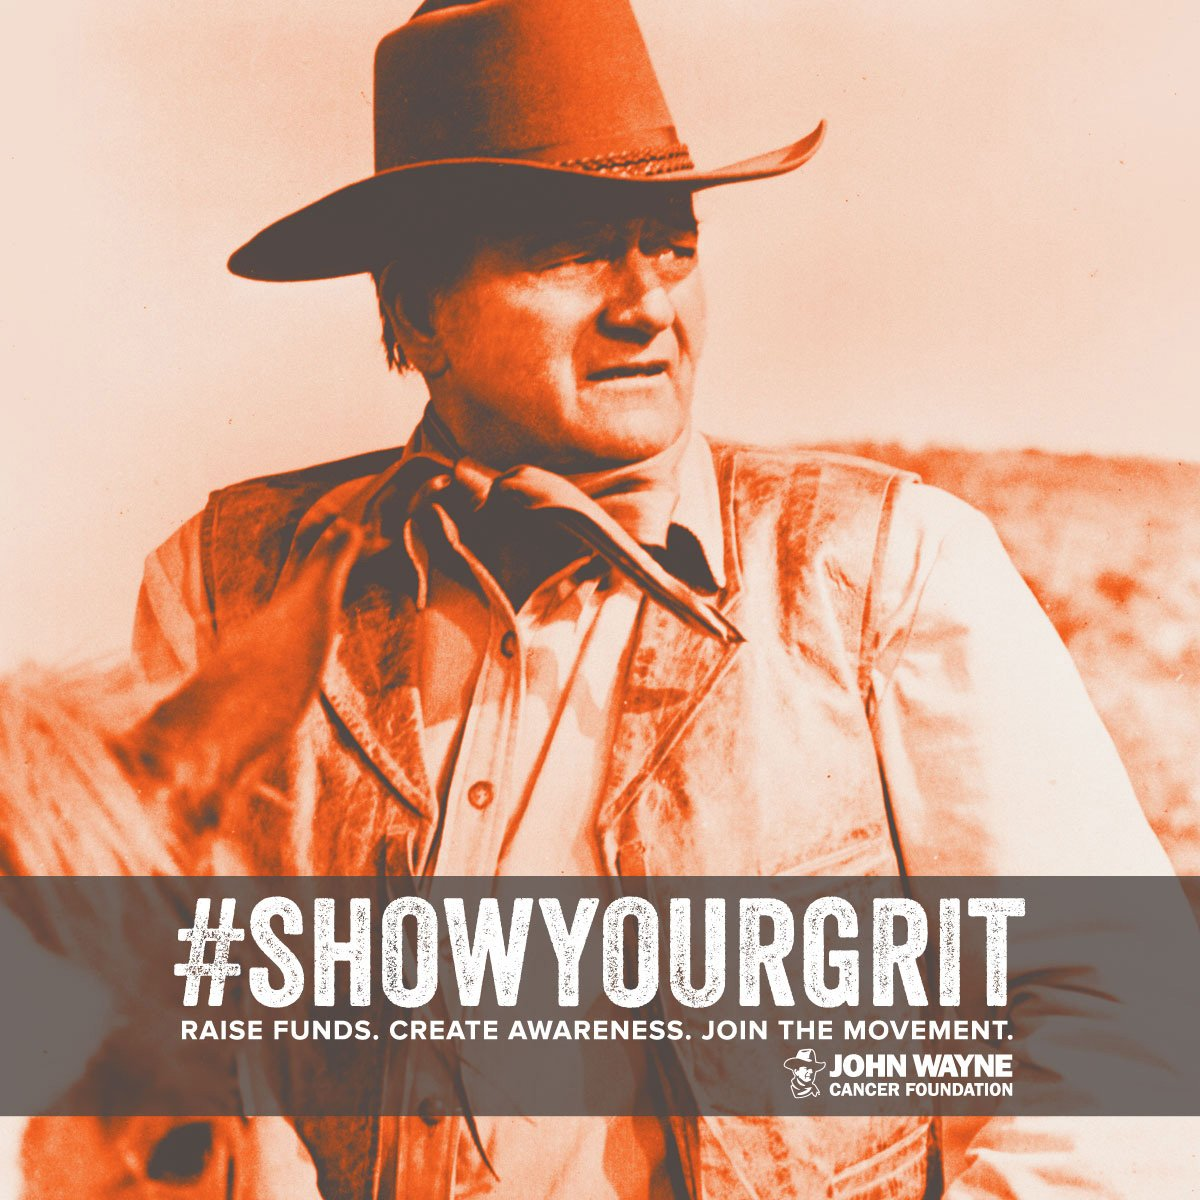 .@JohnDukeWayne fans can soon join the cancer fight w/ Duke-inspired selfies. #ShowYourGrit. https://t.co/FaKa7gUxpY https://t.co/BnEaYeSpes